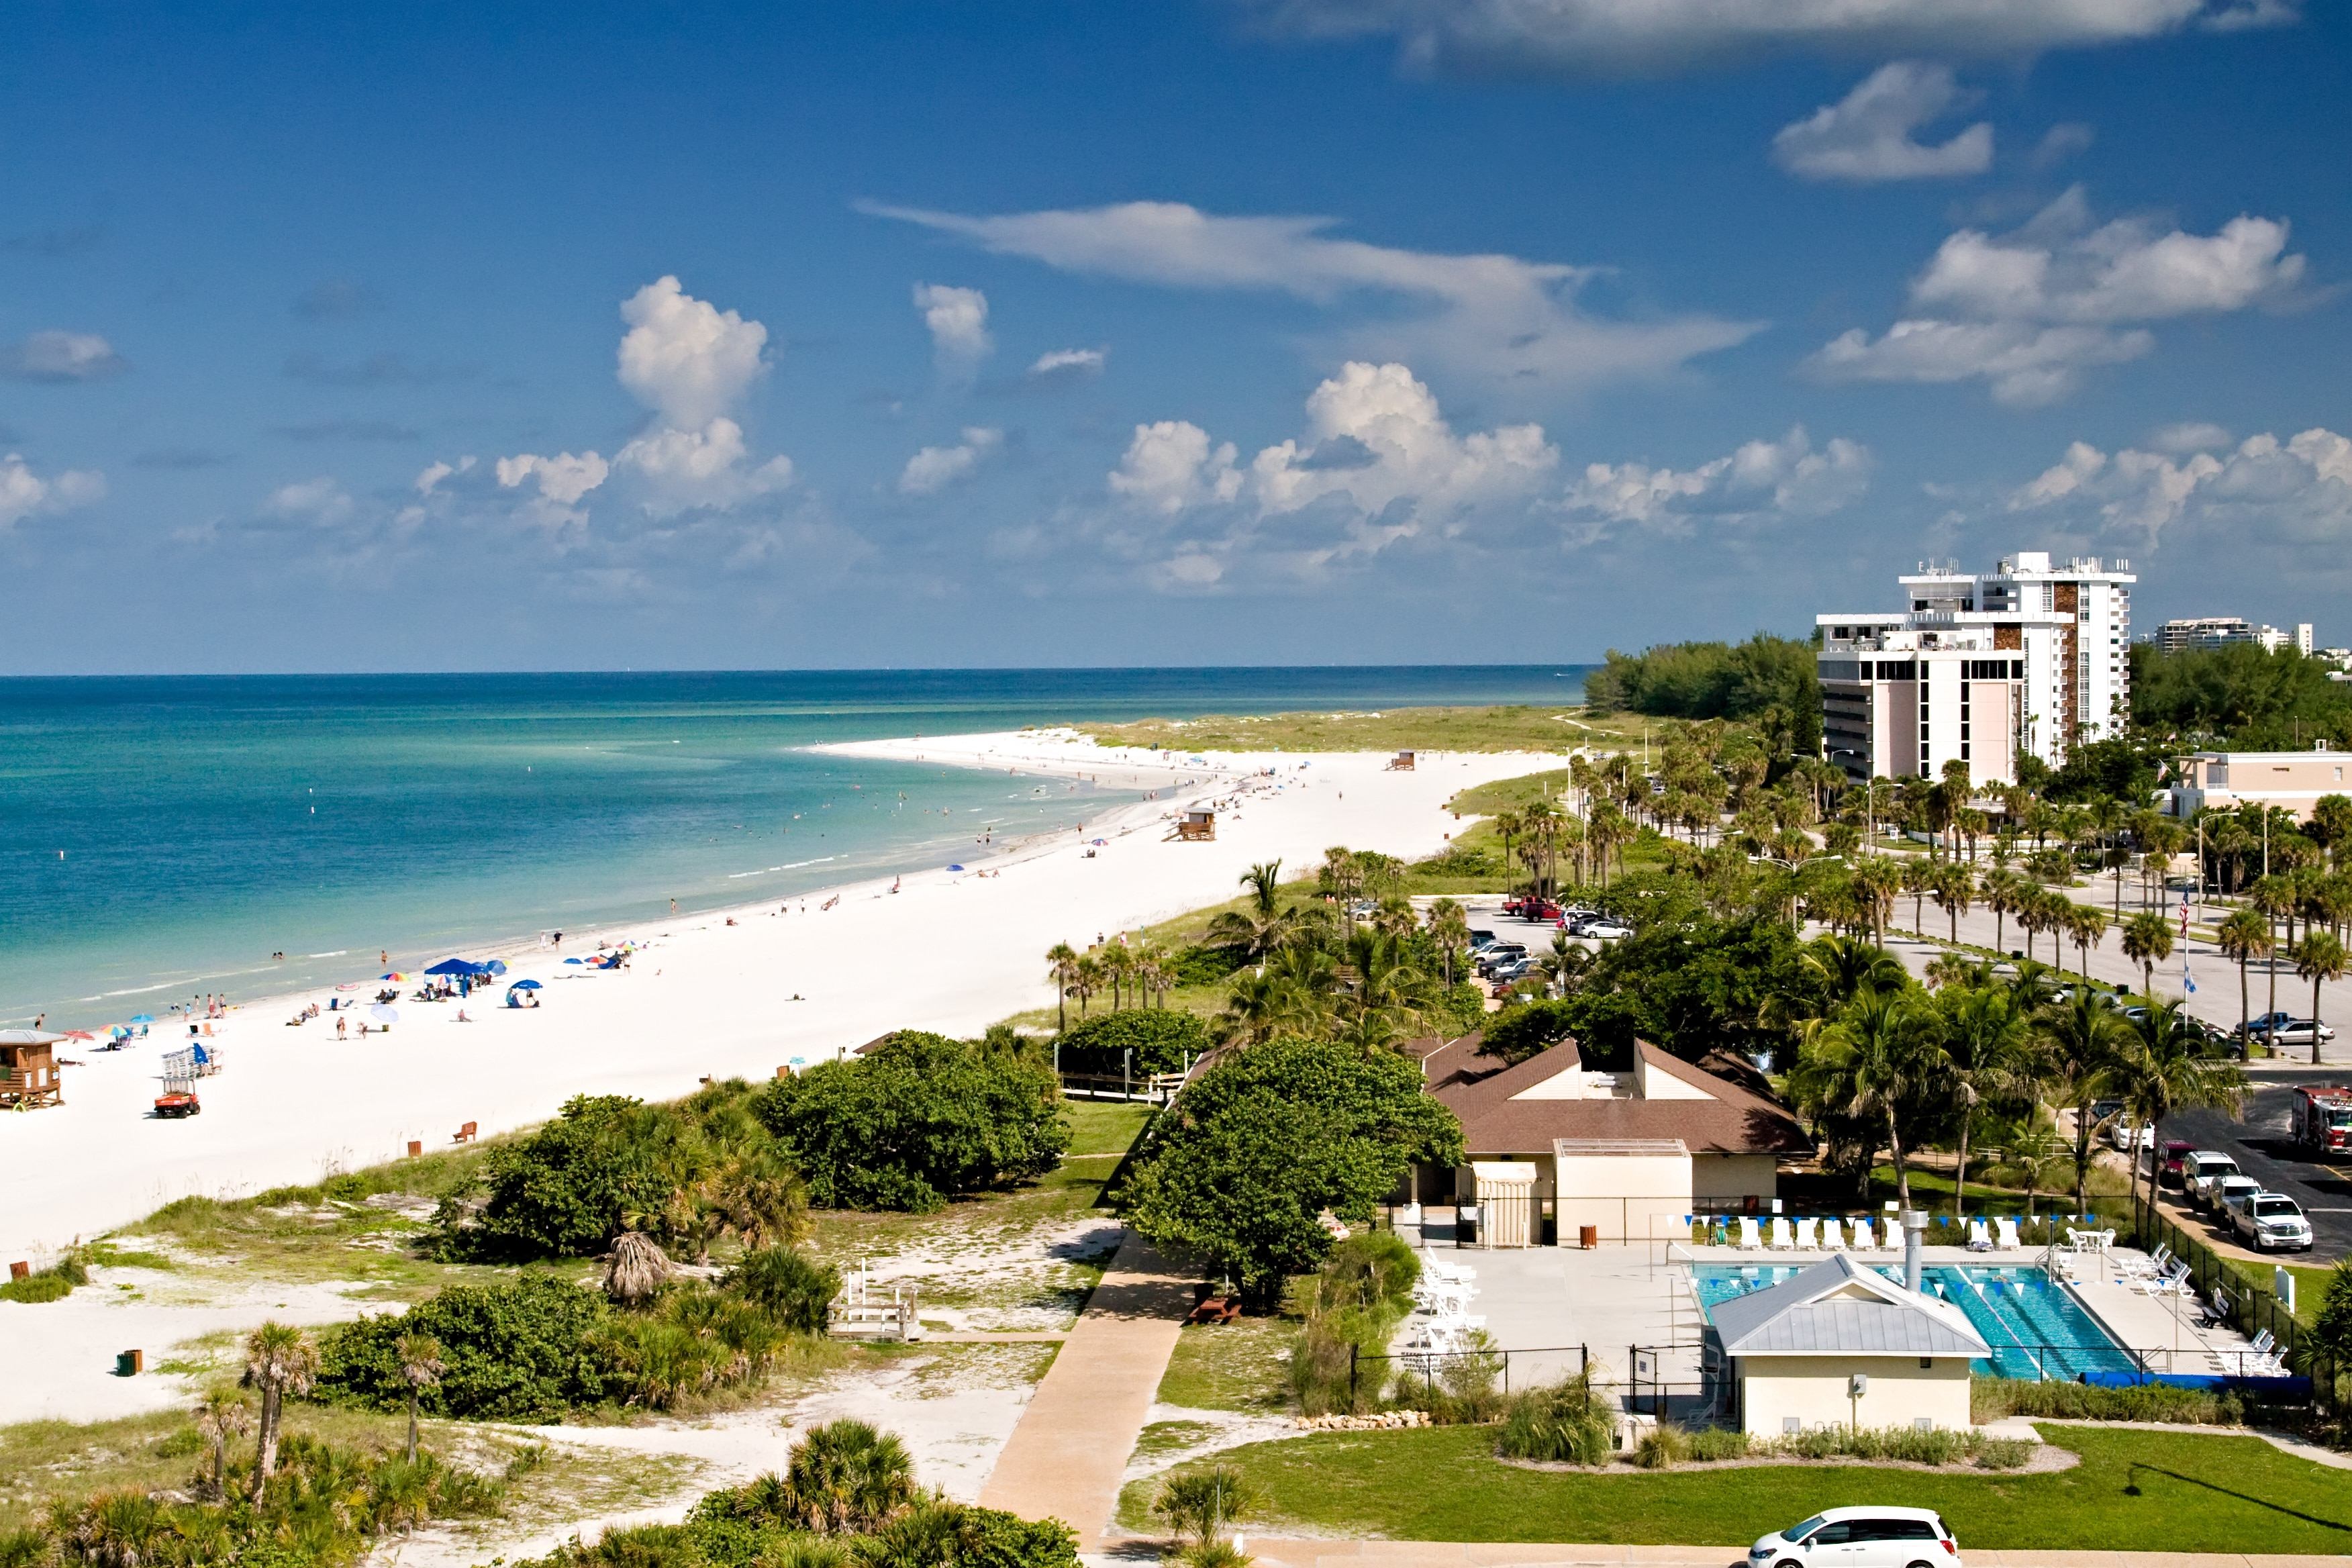 Top 10 Siesta Key Hotels Near Public Beach Florida